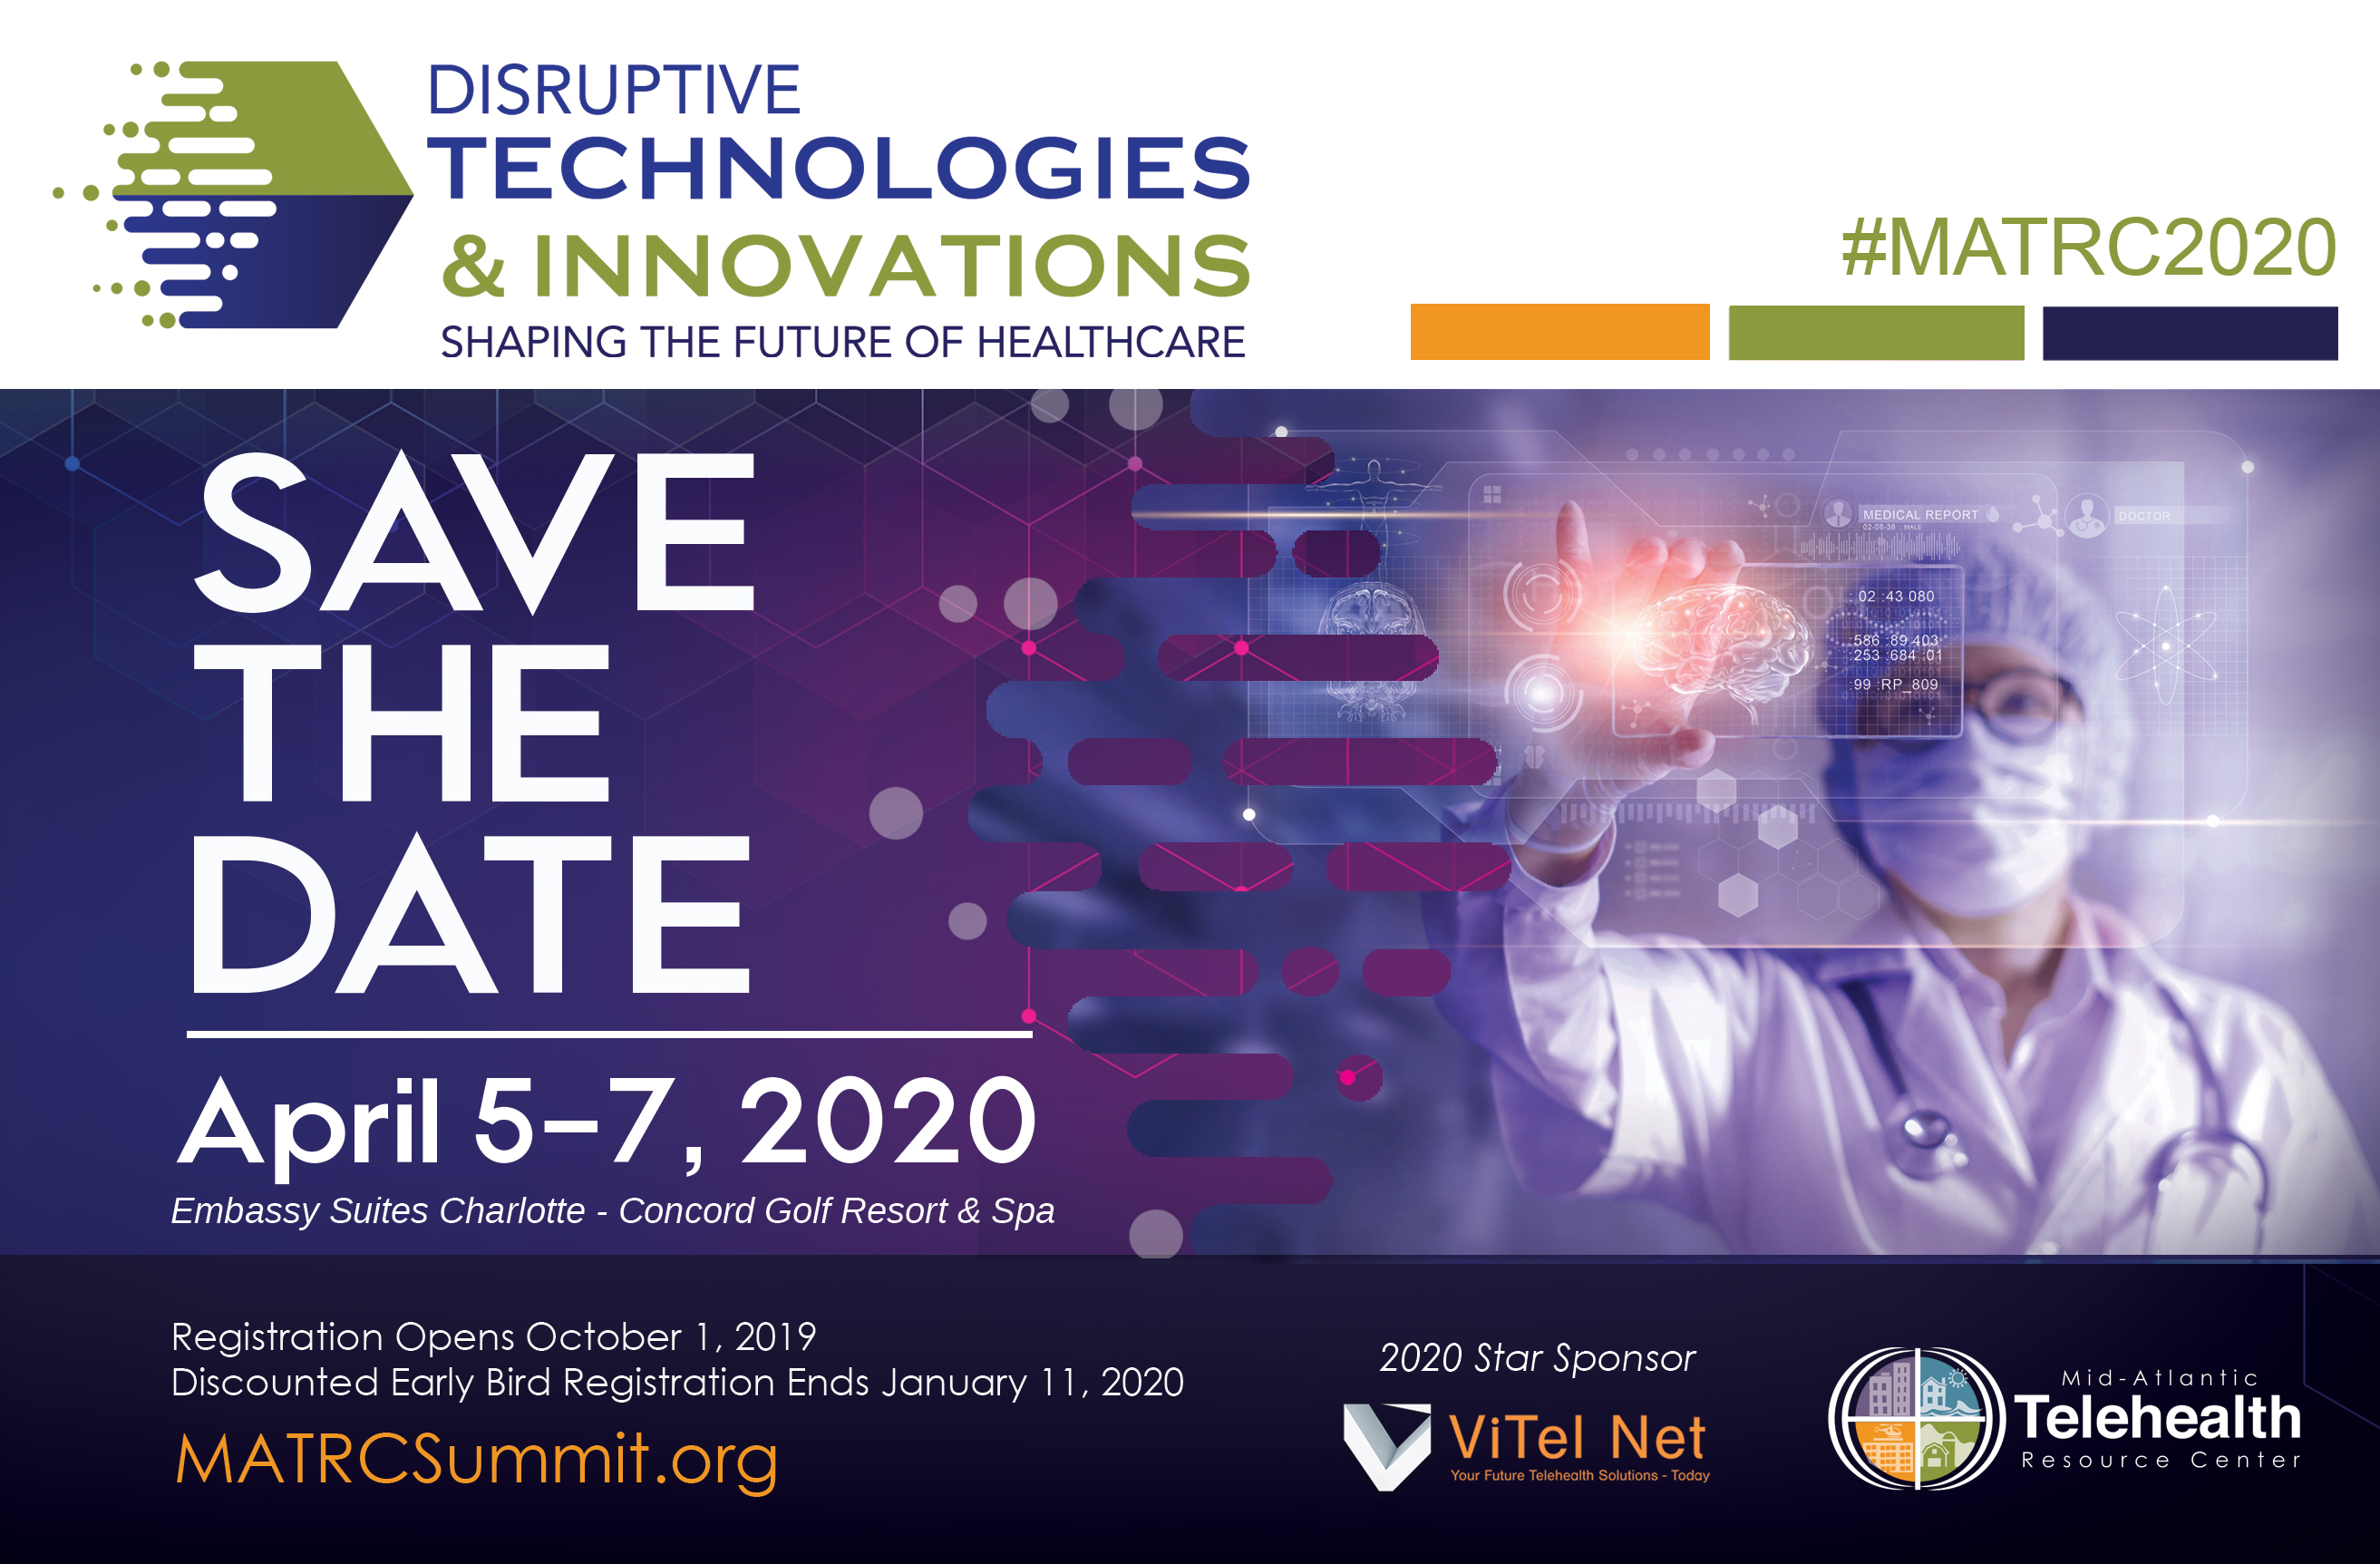 2020 MATRC Summit | Disruptive Technologies & Innovations: Shaping the Future of Health Care | Save the Date | April 5-7, 2020